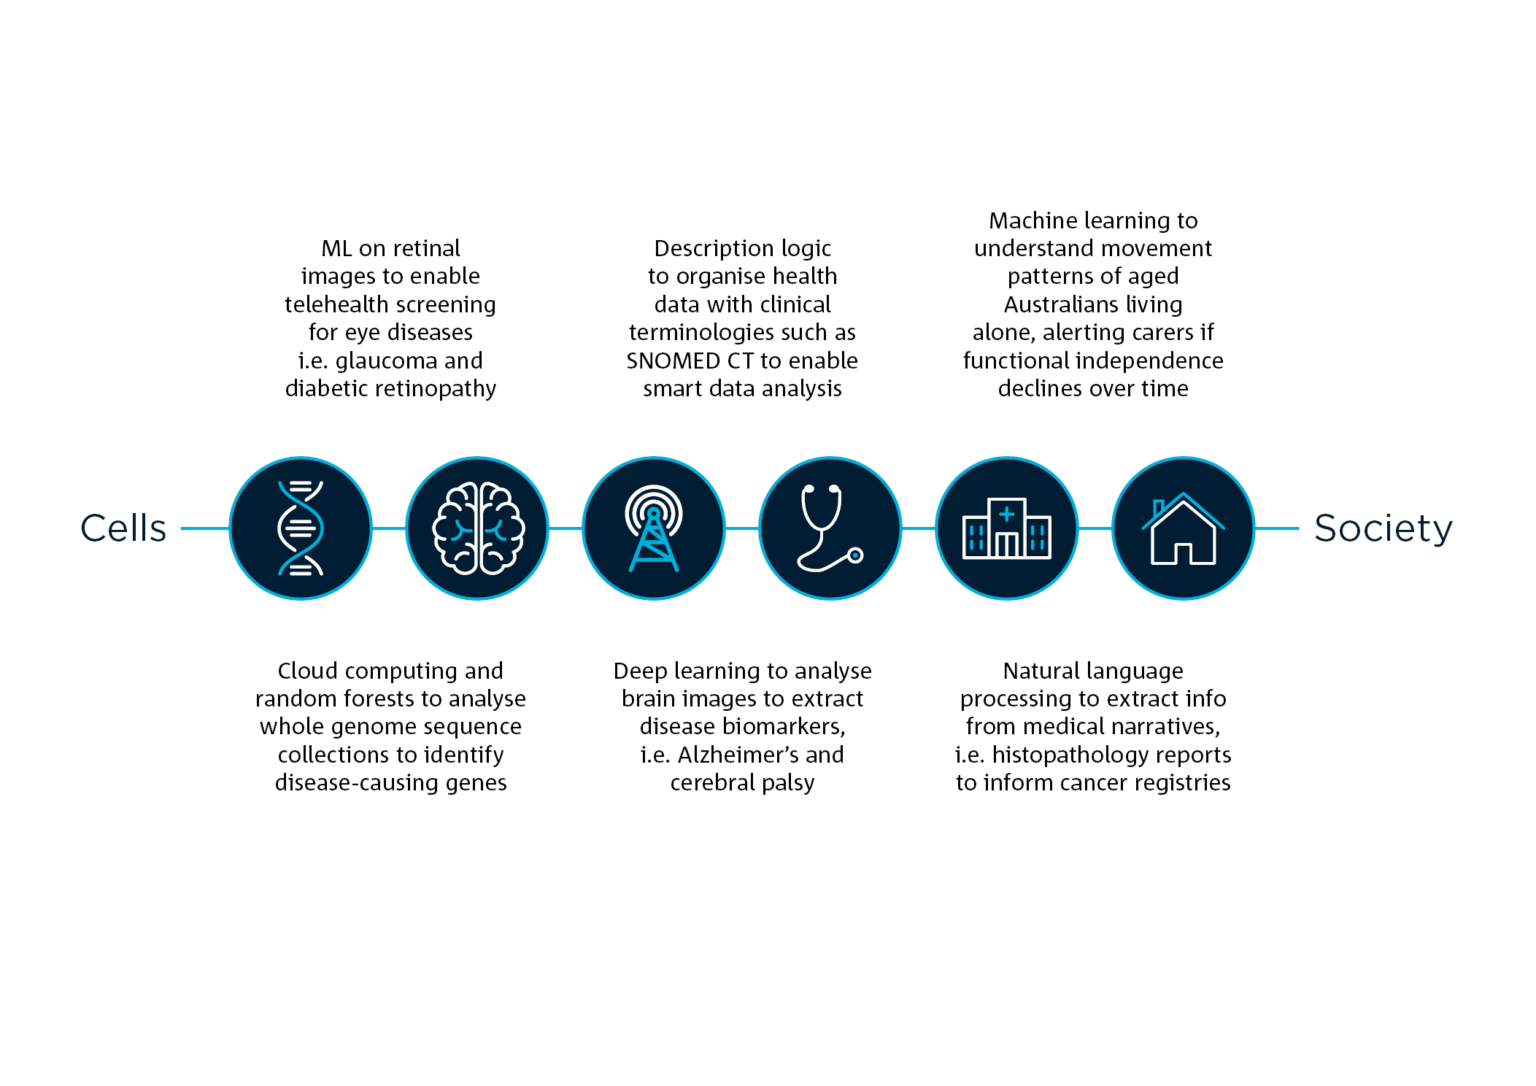 A graphic outlining machine learning and AI in health care